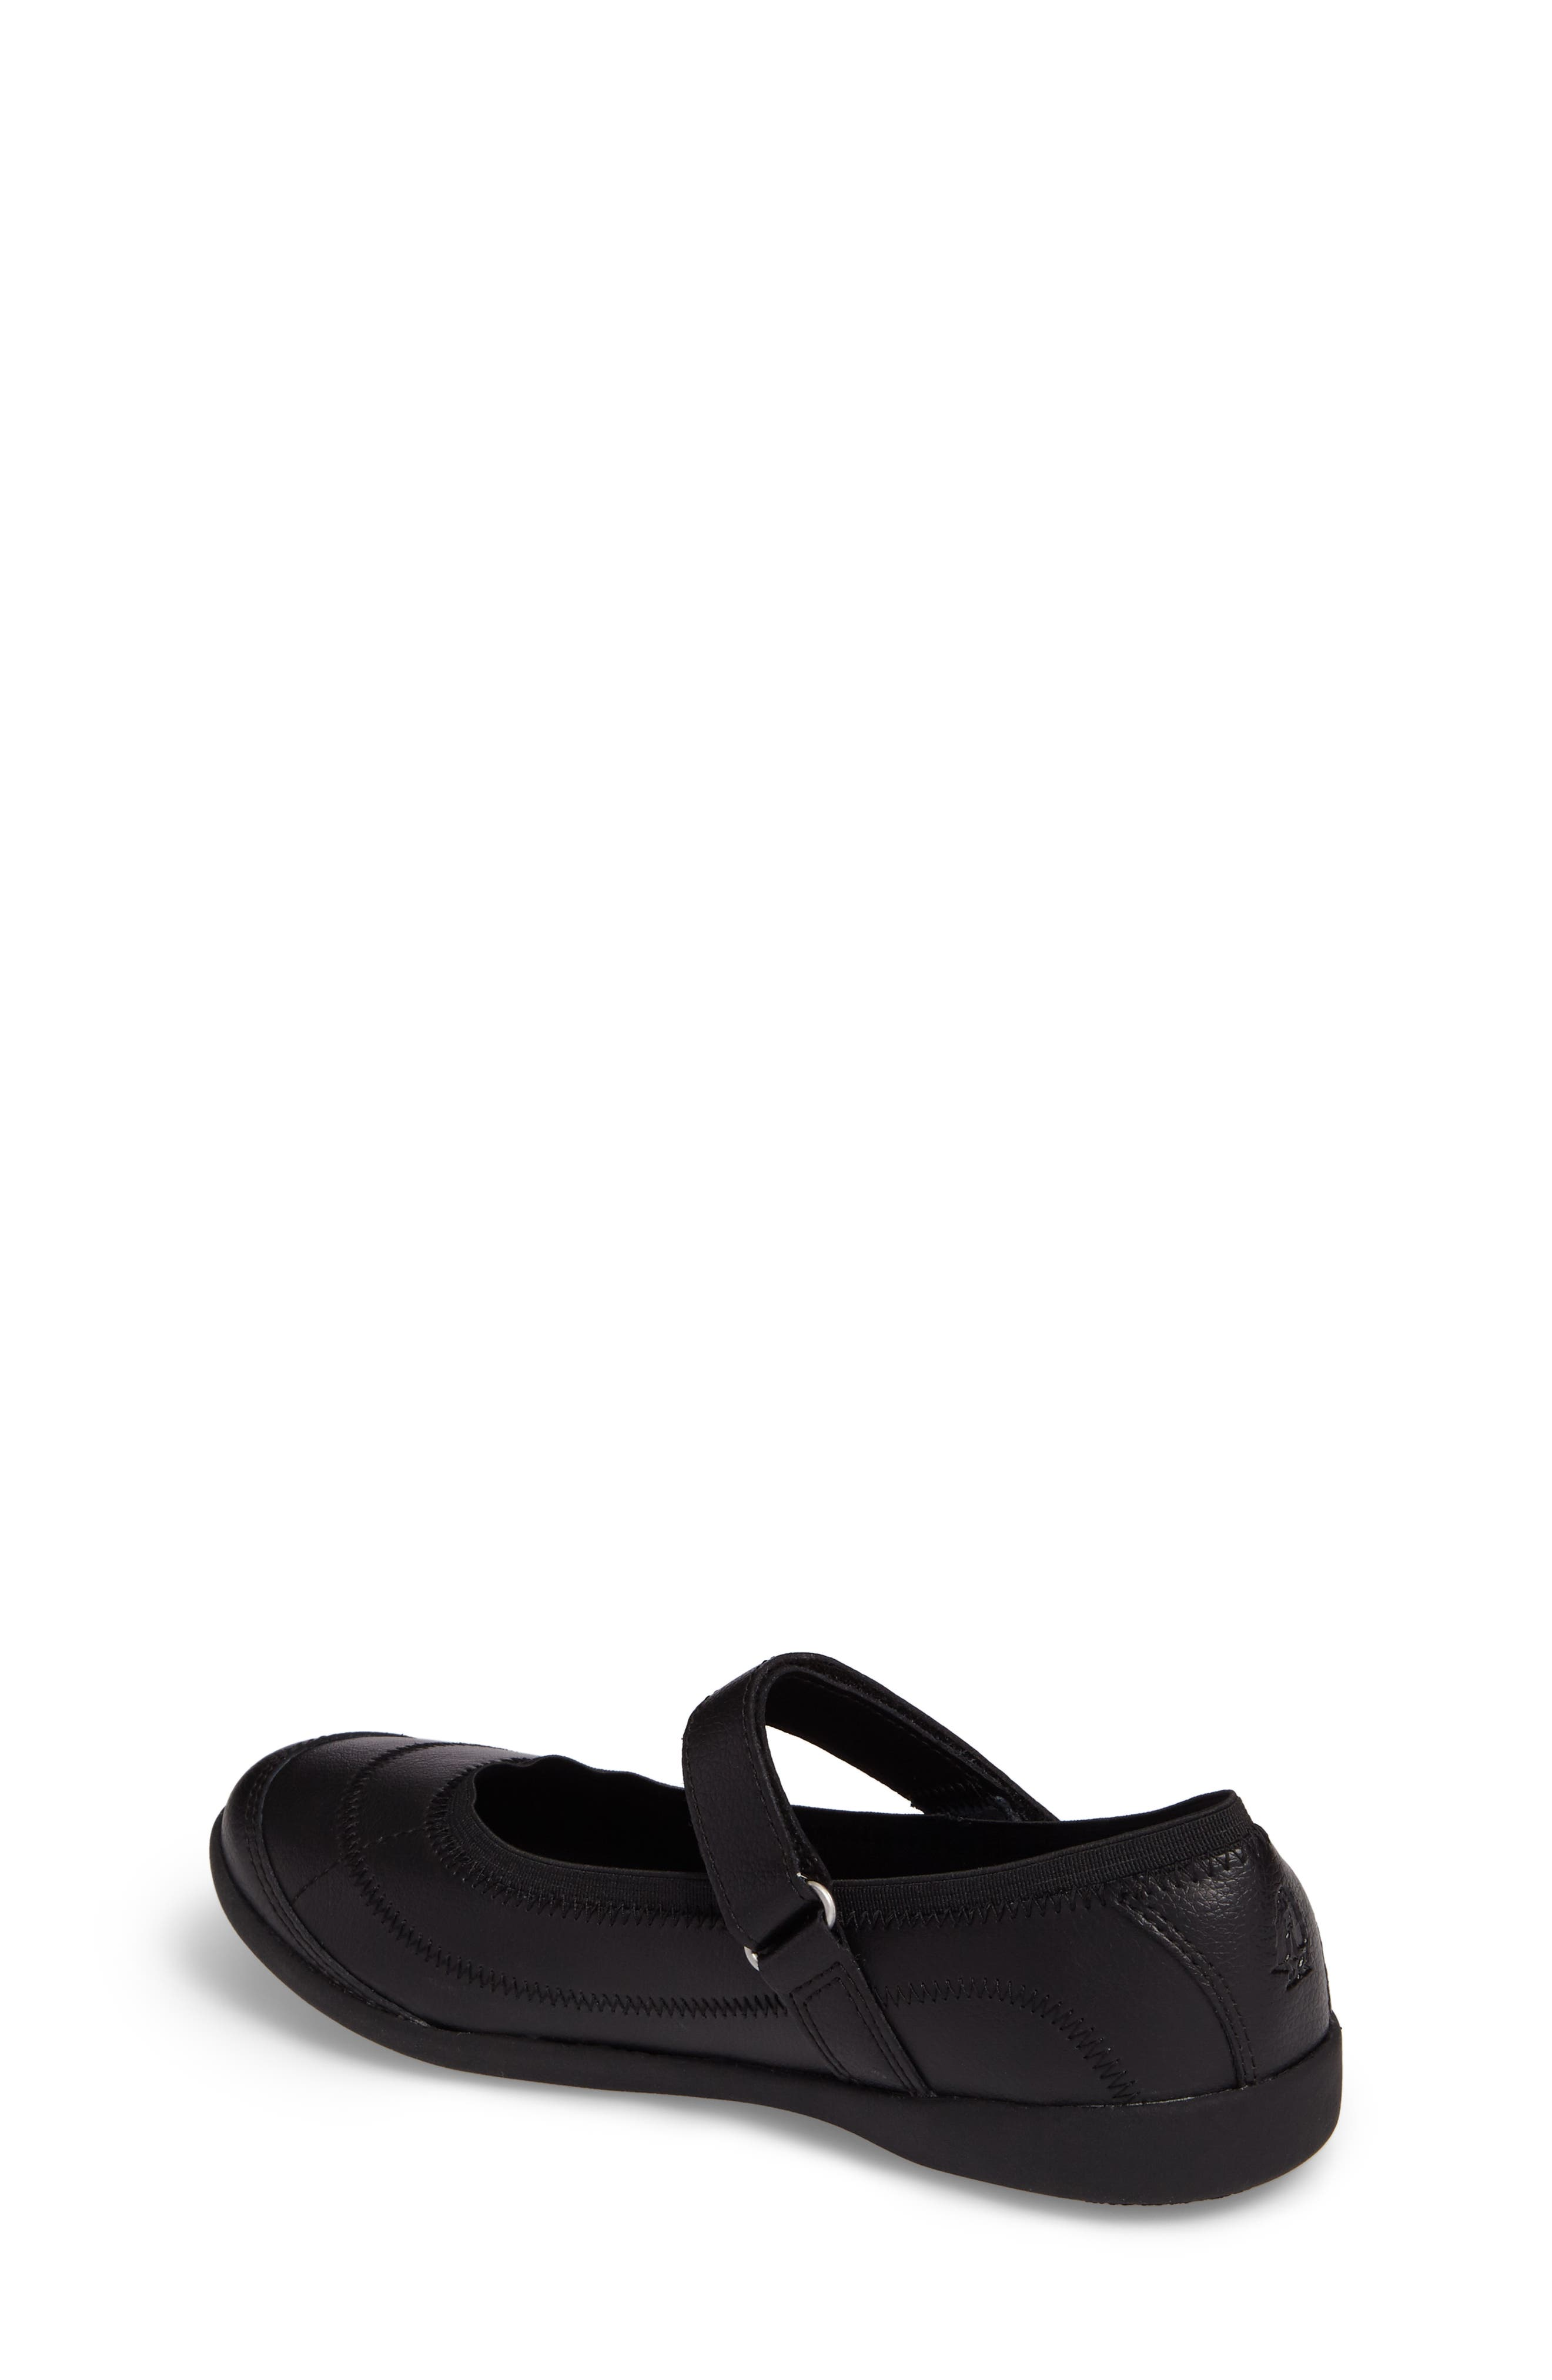 HUSH PUPPIES<SUP>®</SUP>, Reese Mary Jane Flat, Alternate thumbnail 2, color, BLACK LEATHER